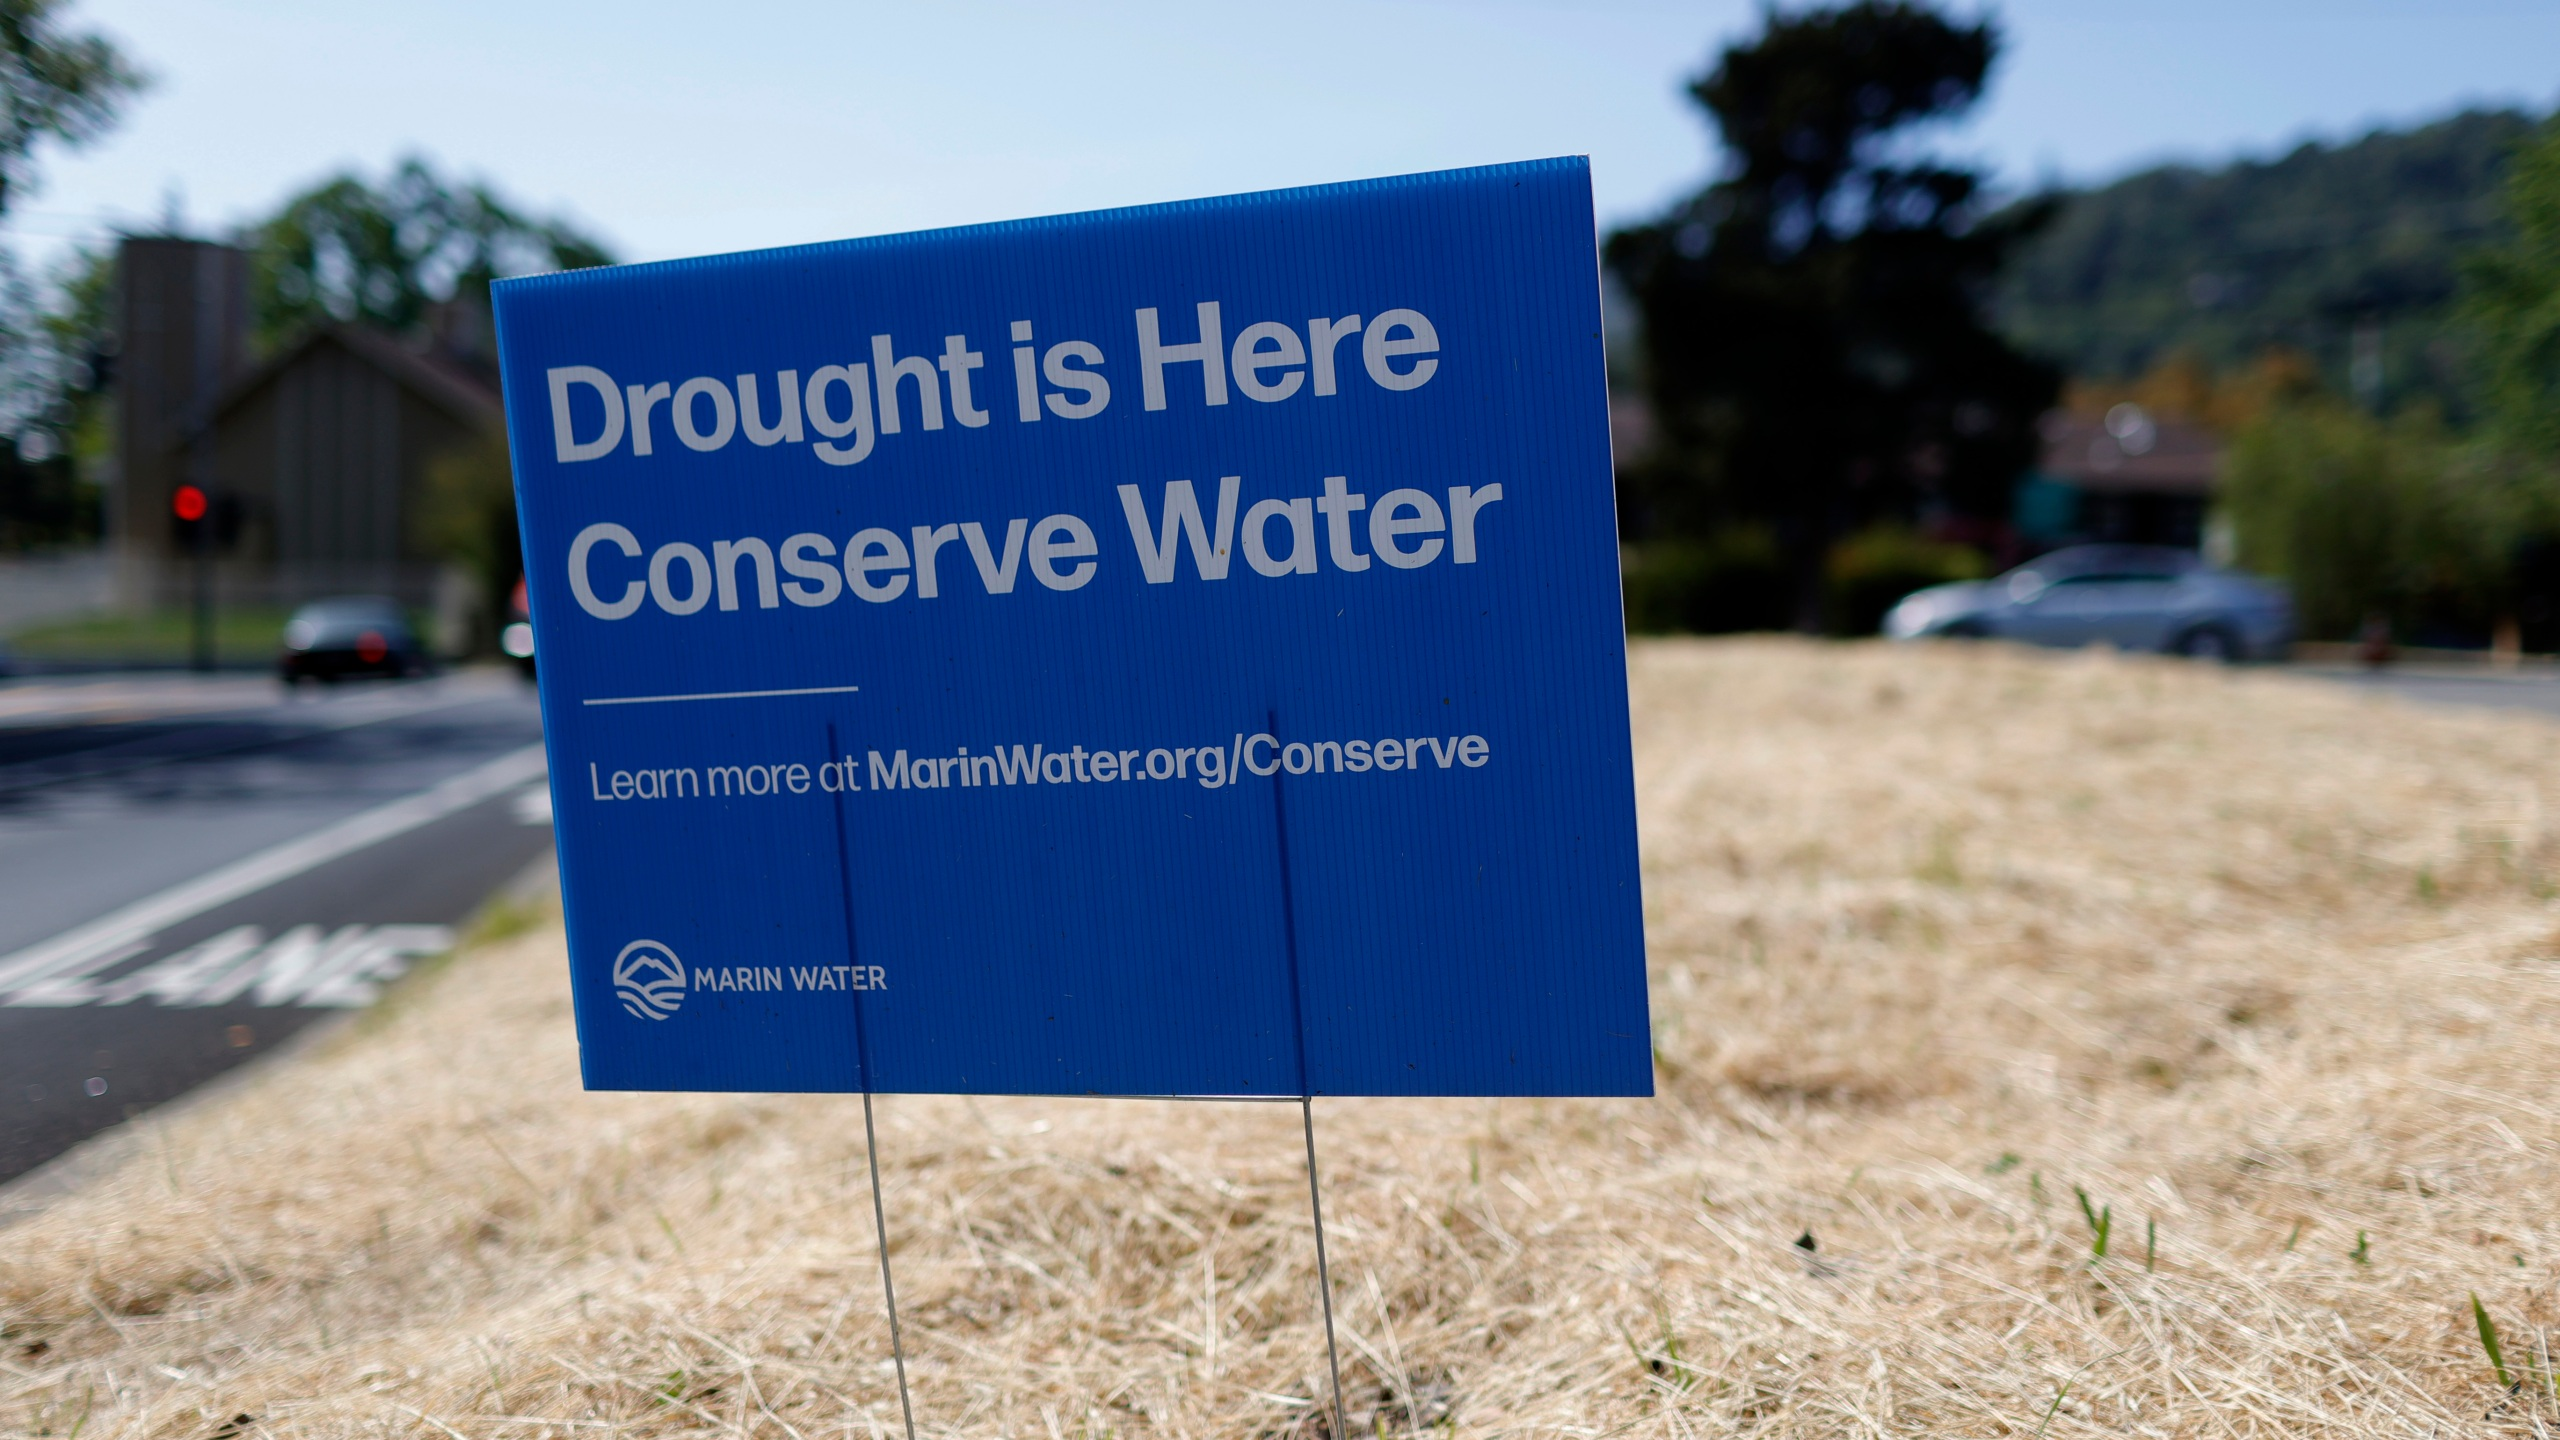 A sign advocating water conservation is posted in a field of dry grass on April 23, 2021 in San Anselmo, California. (Justin Sullivan/Getty Images)